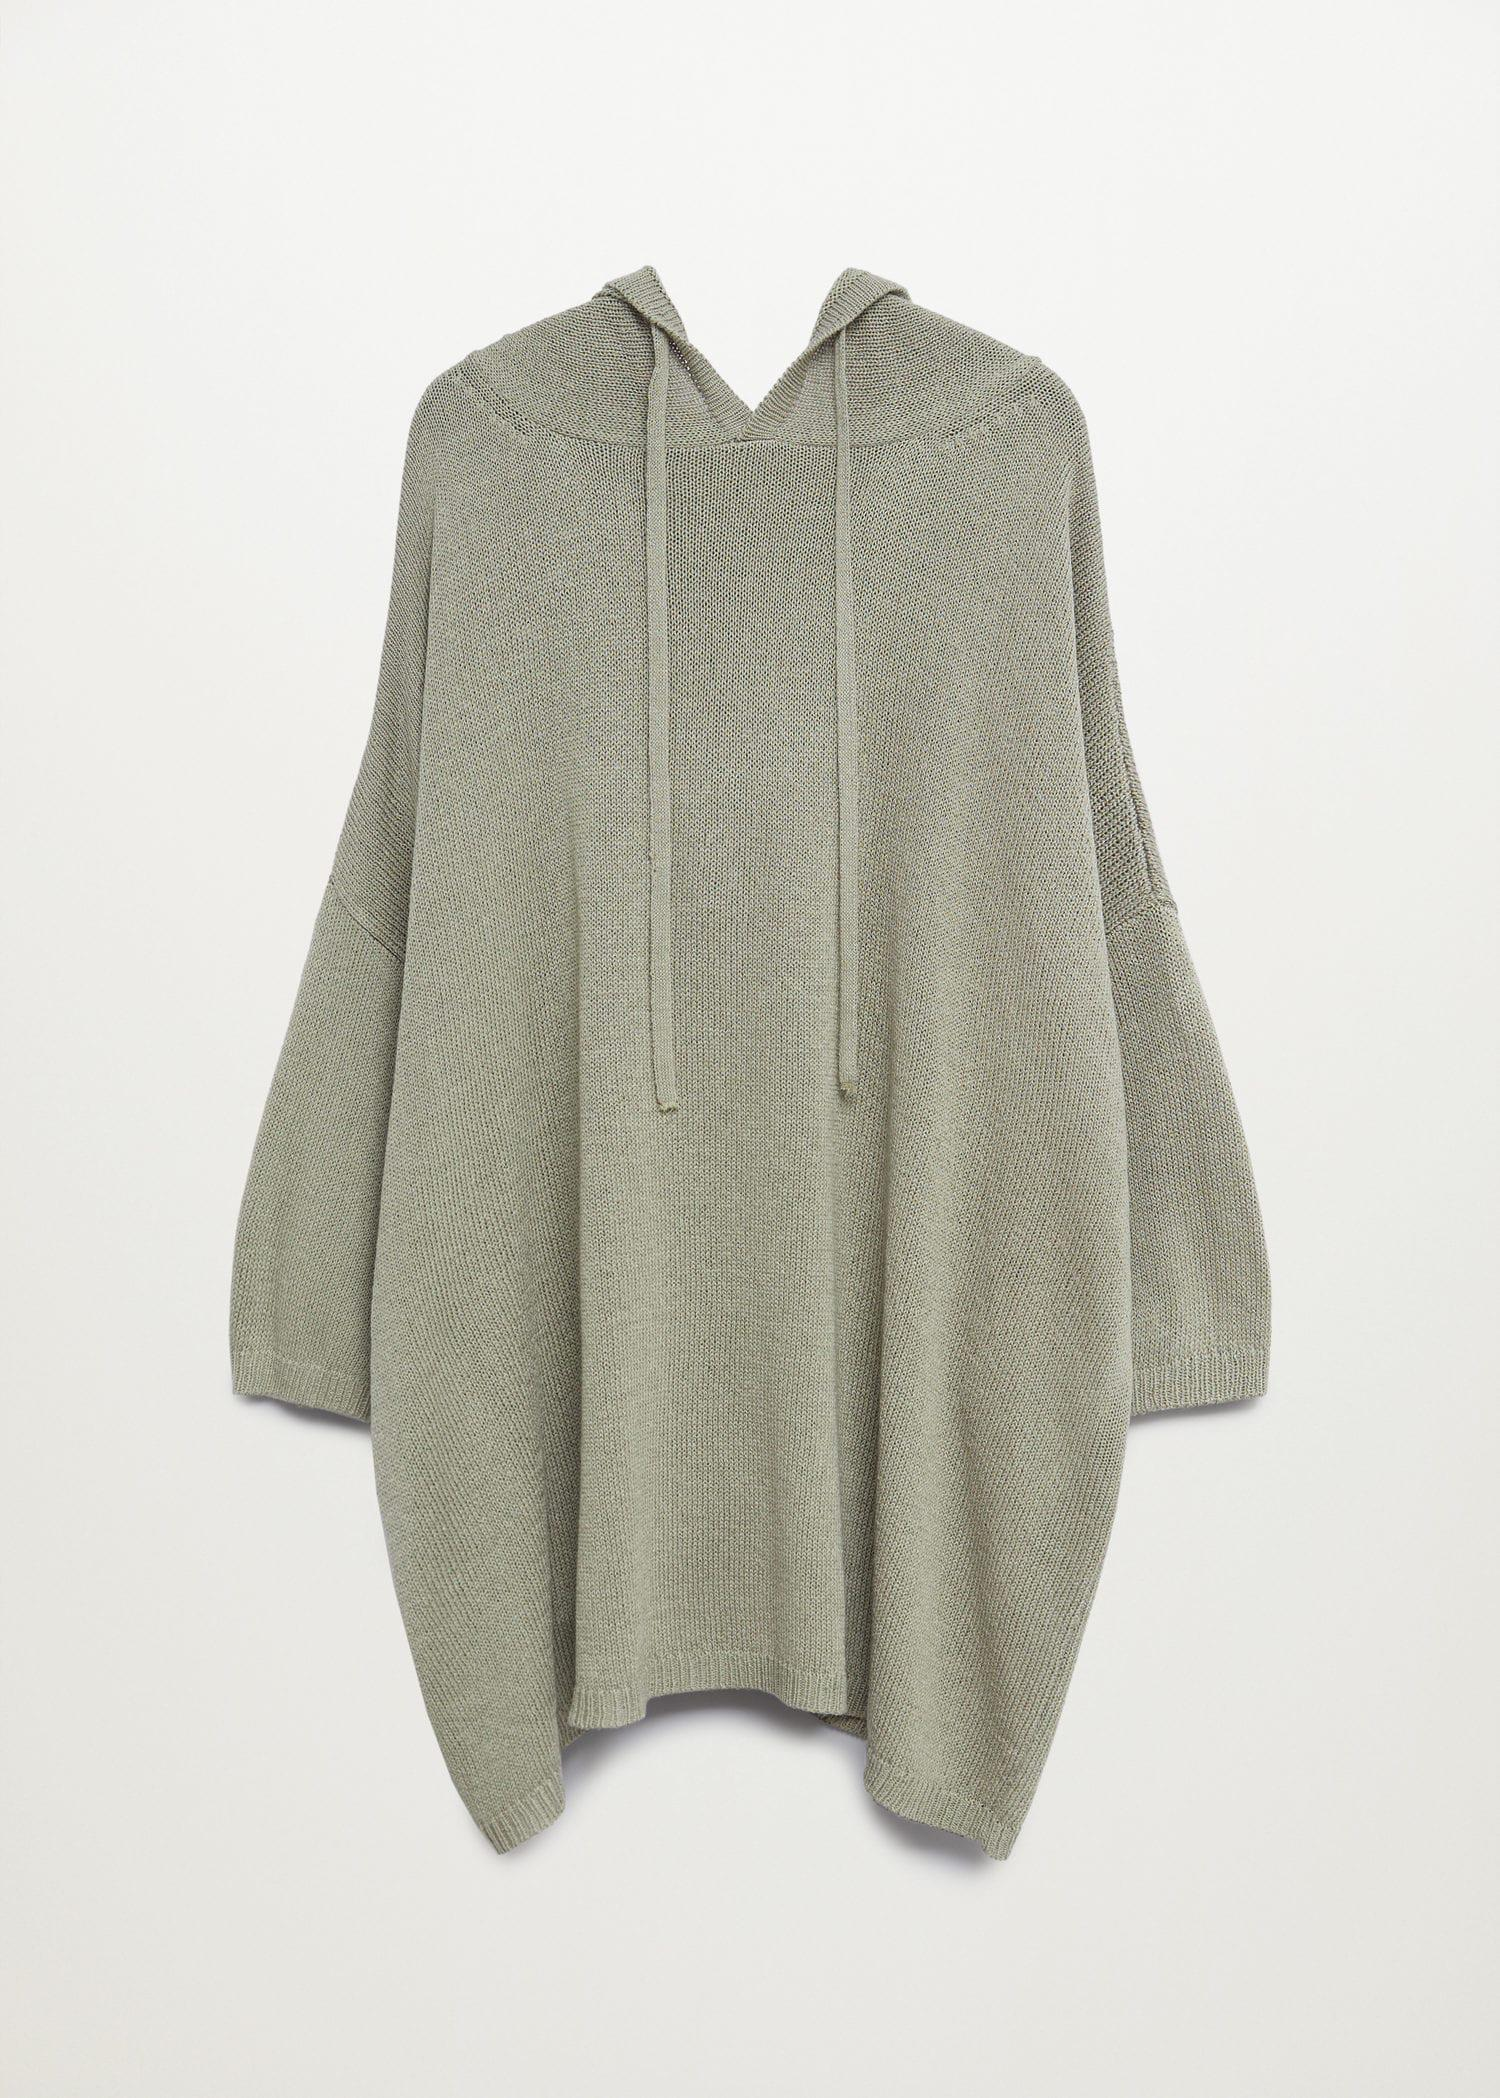 Oversized hooded sweater 7